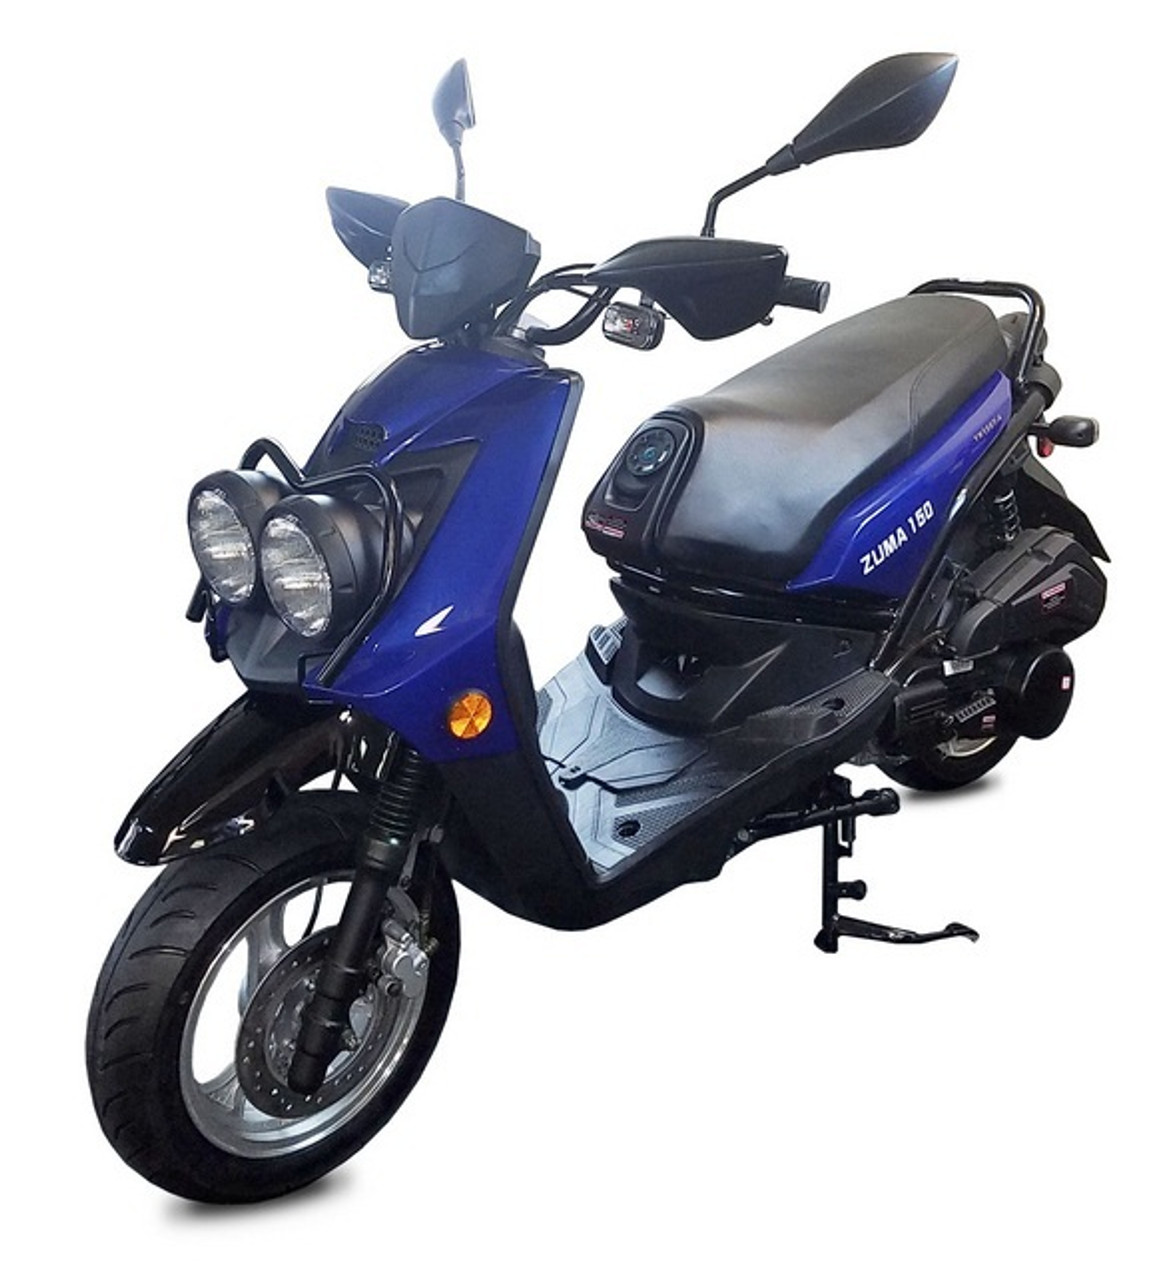 Vitacci ZOMA 150CC Scooter, 4 Stroke, Air-Forced Cool,Single Cylinder